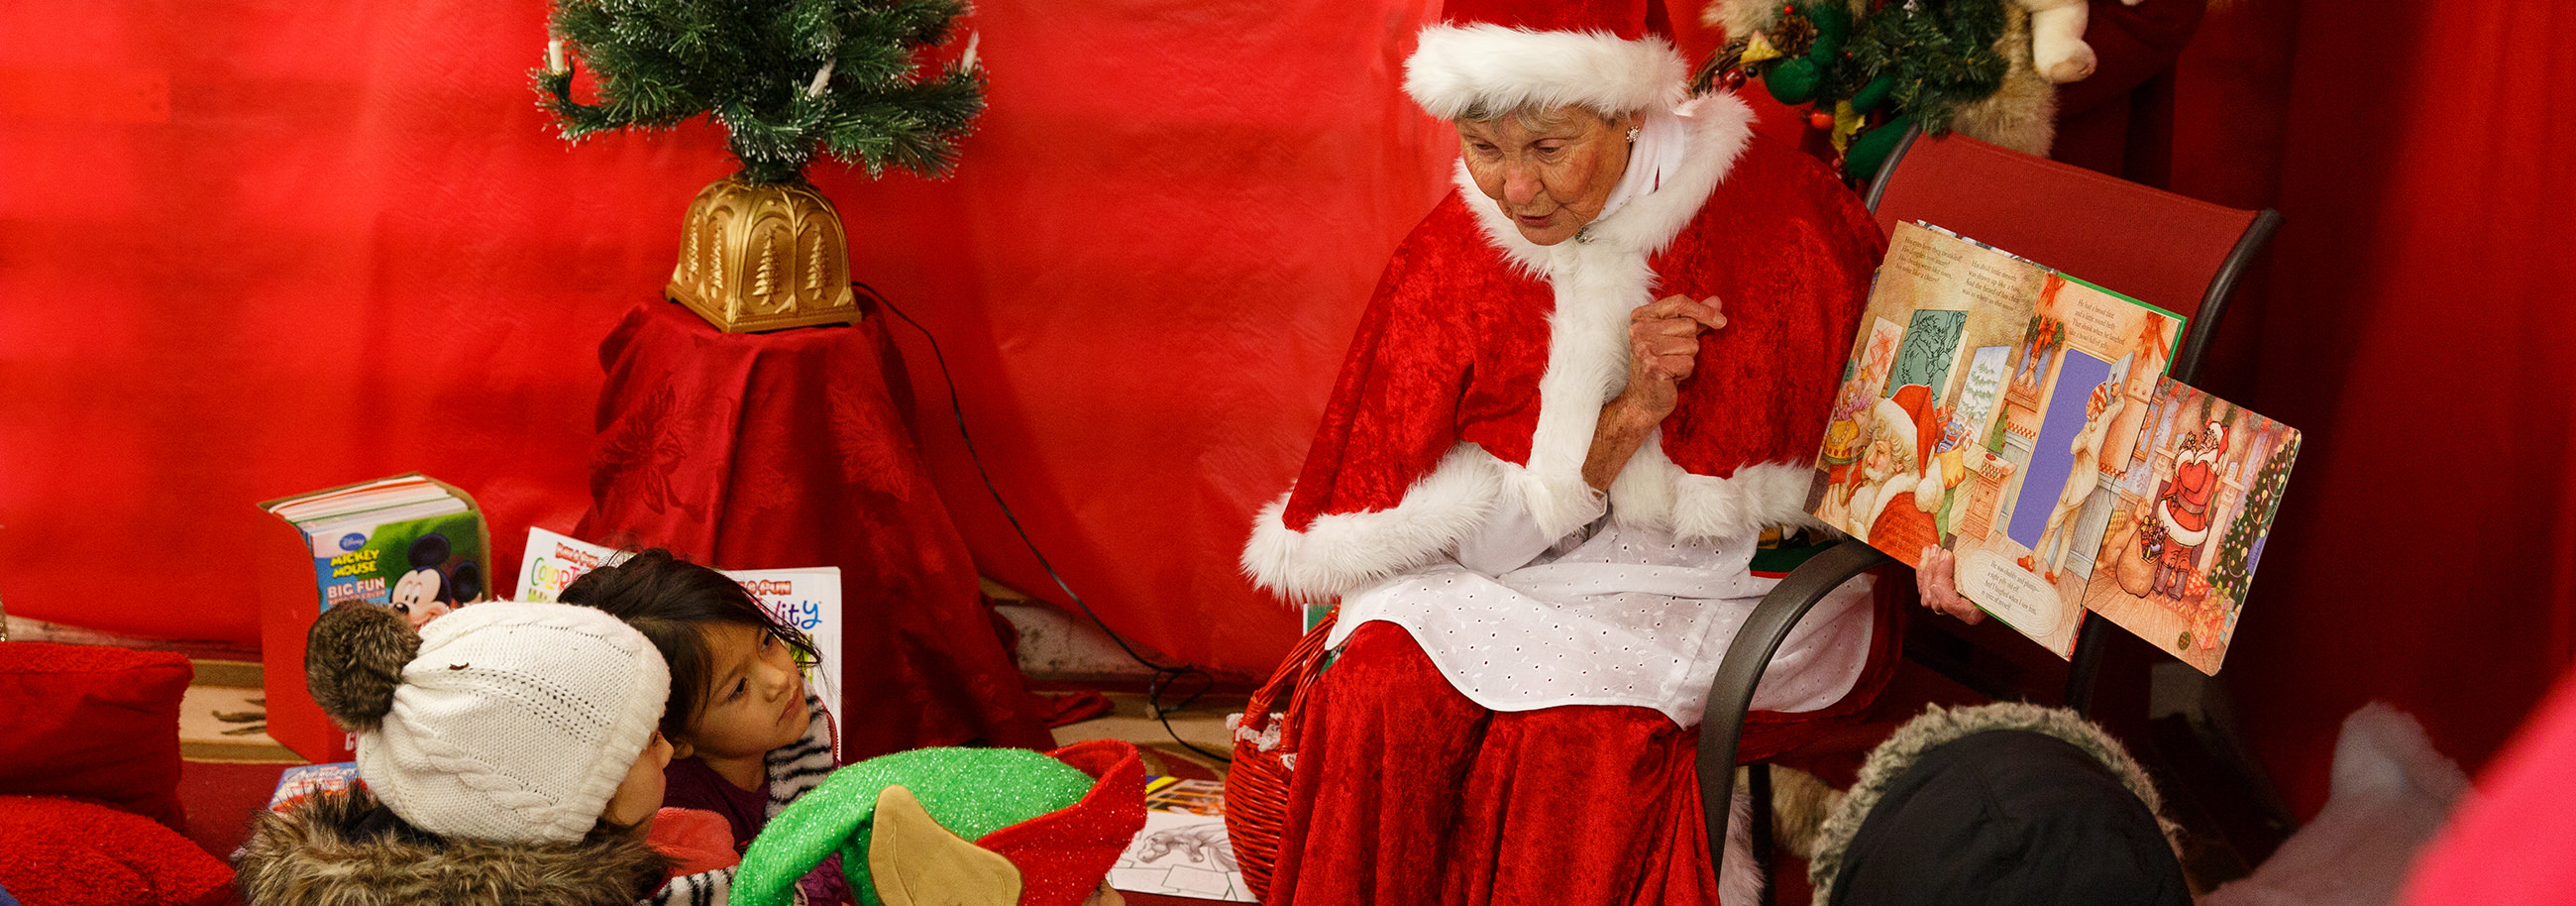 Barb Masho transforms into Mrs. Claus to bring the joy of the holiday to children in New Holland.